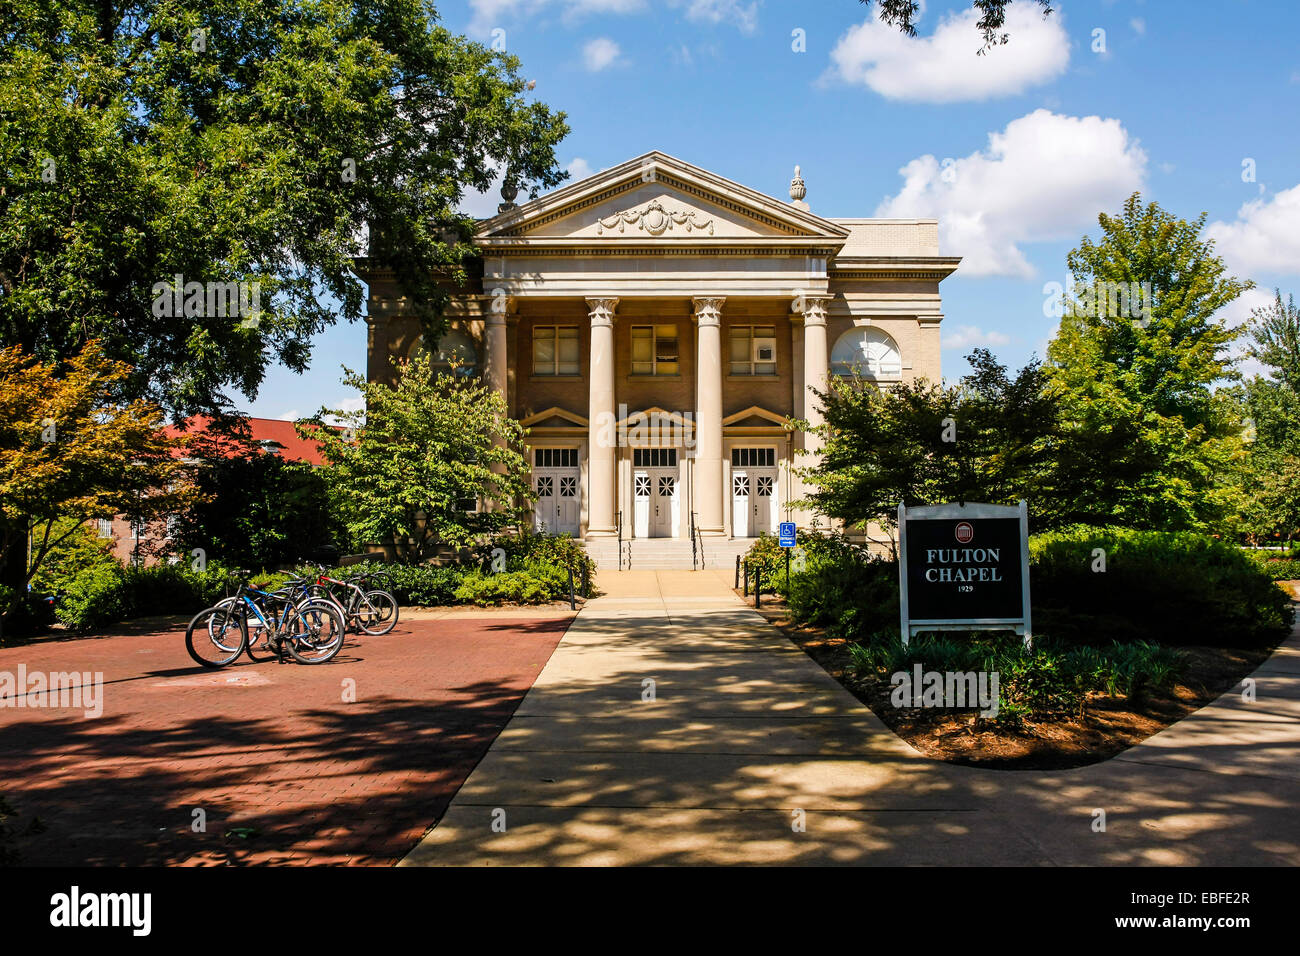 The Fulton Chapel building on the campus of 'Ole Miss' - University of Mississippi at Oxford - Stock Image